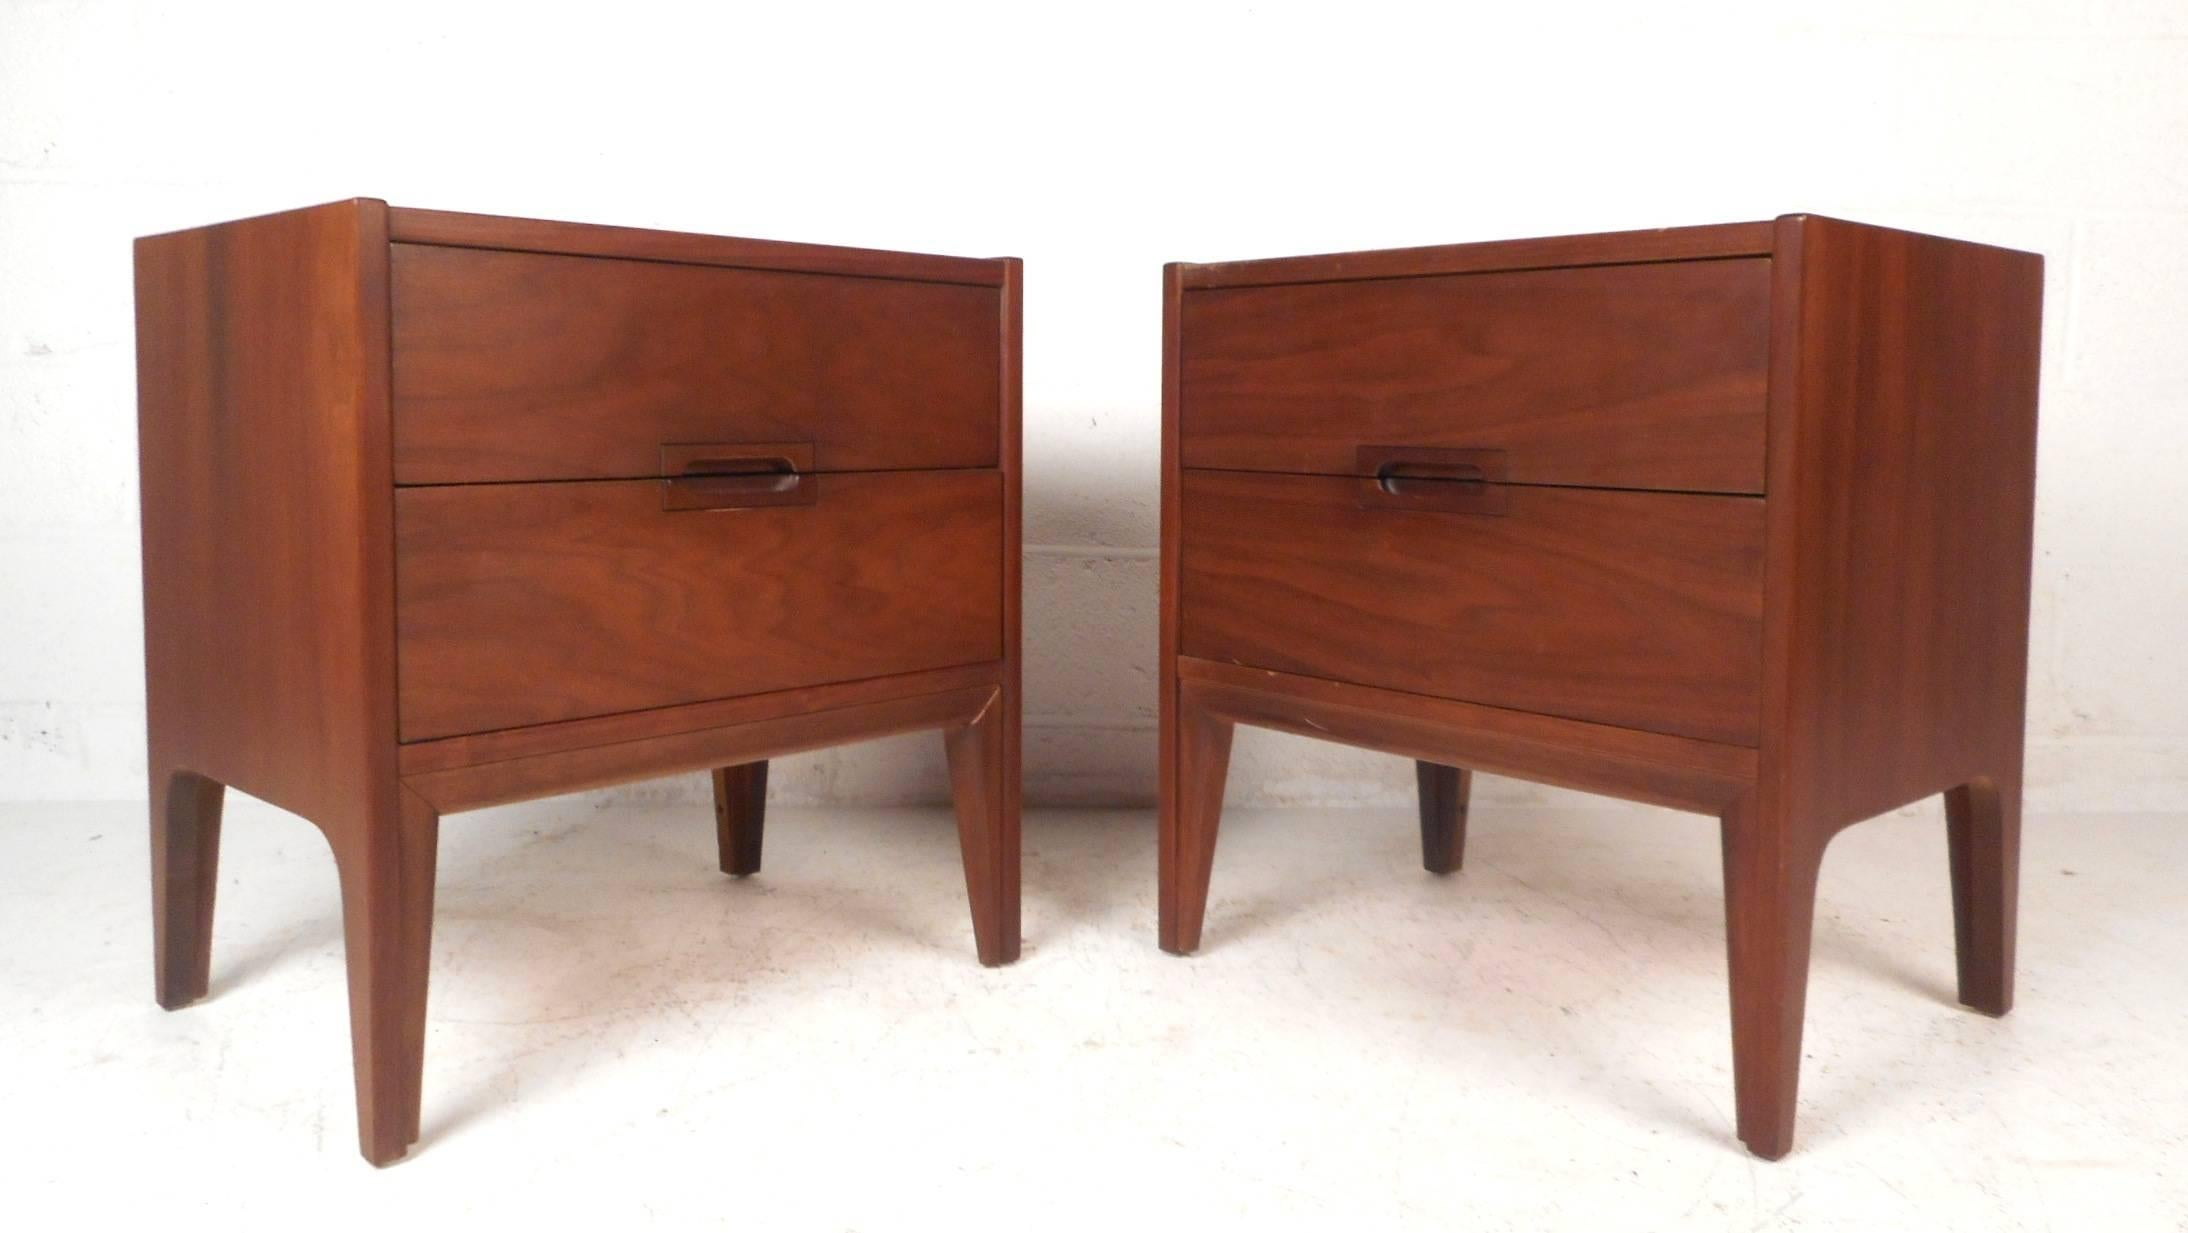 American Mid Century Modern Walnut Bedroom Set By United Furniture Co For  Sale